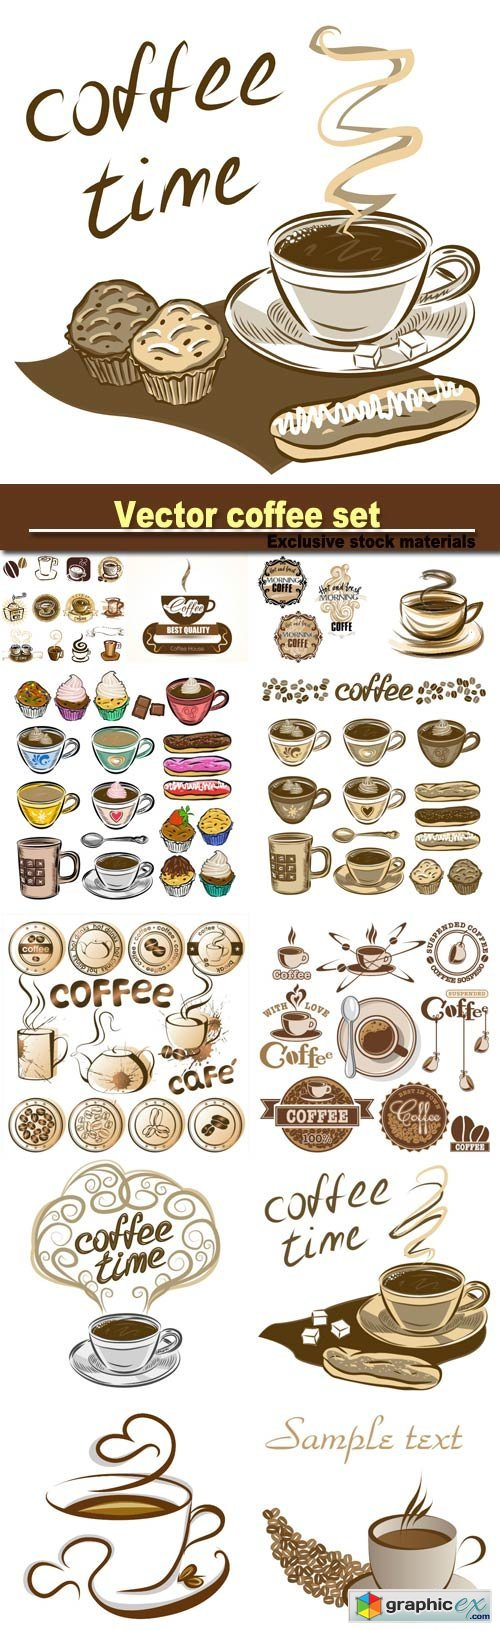 Hand drawn vector coffee set, coffee cups and cakes